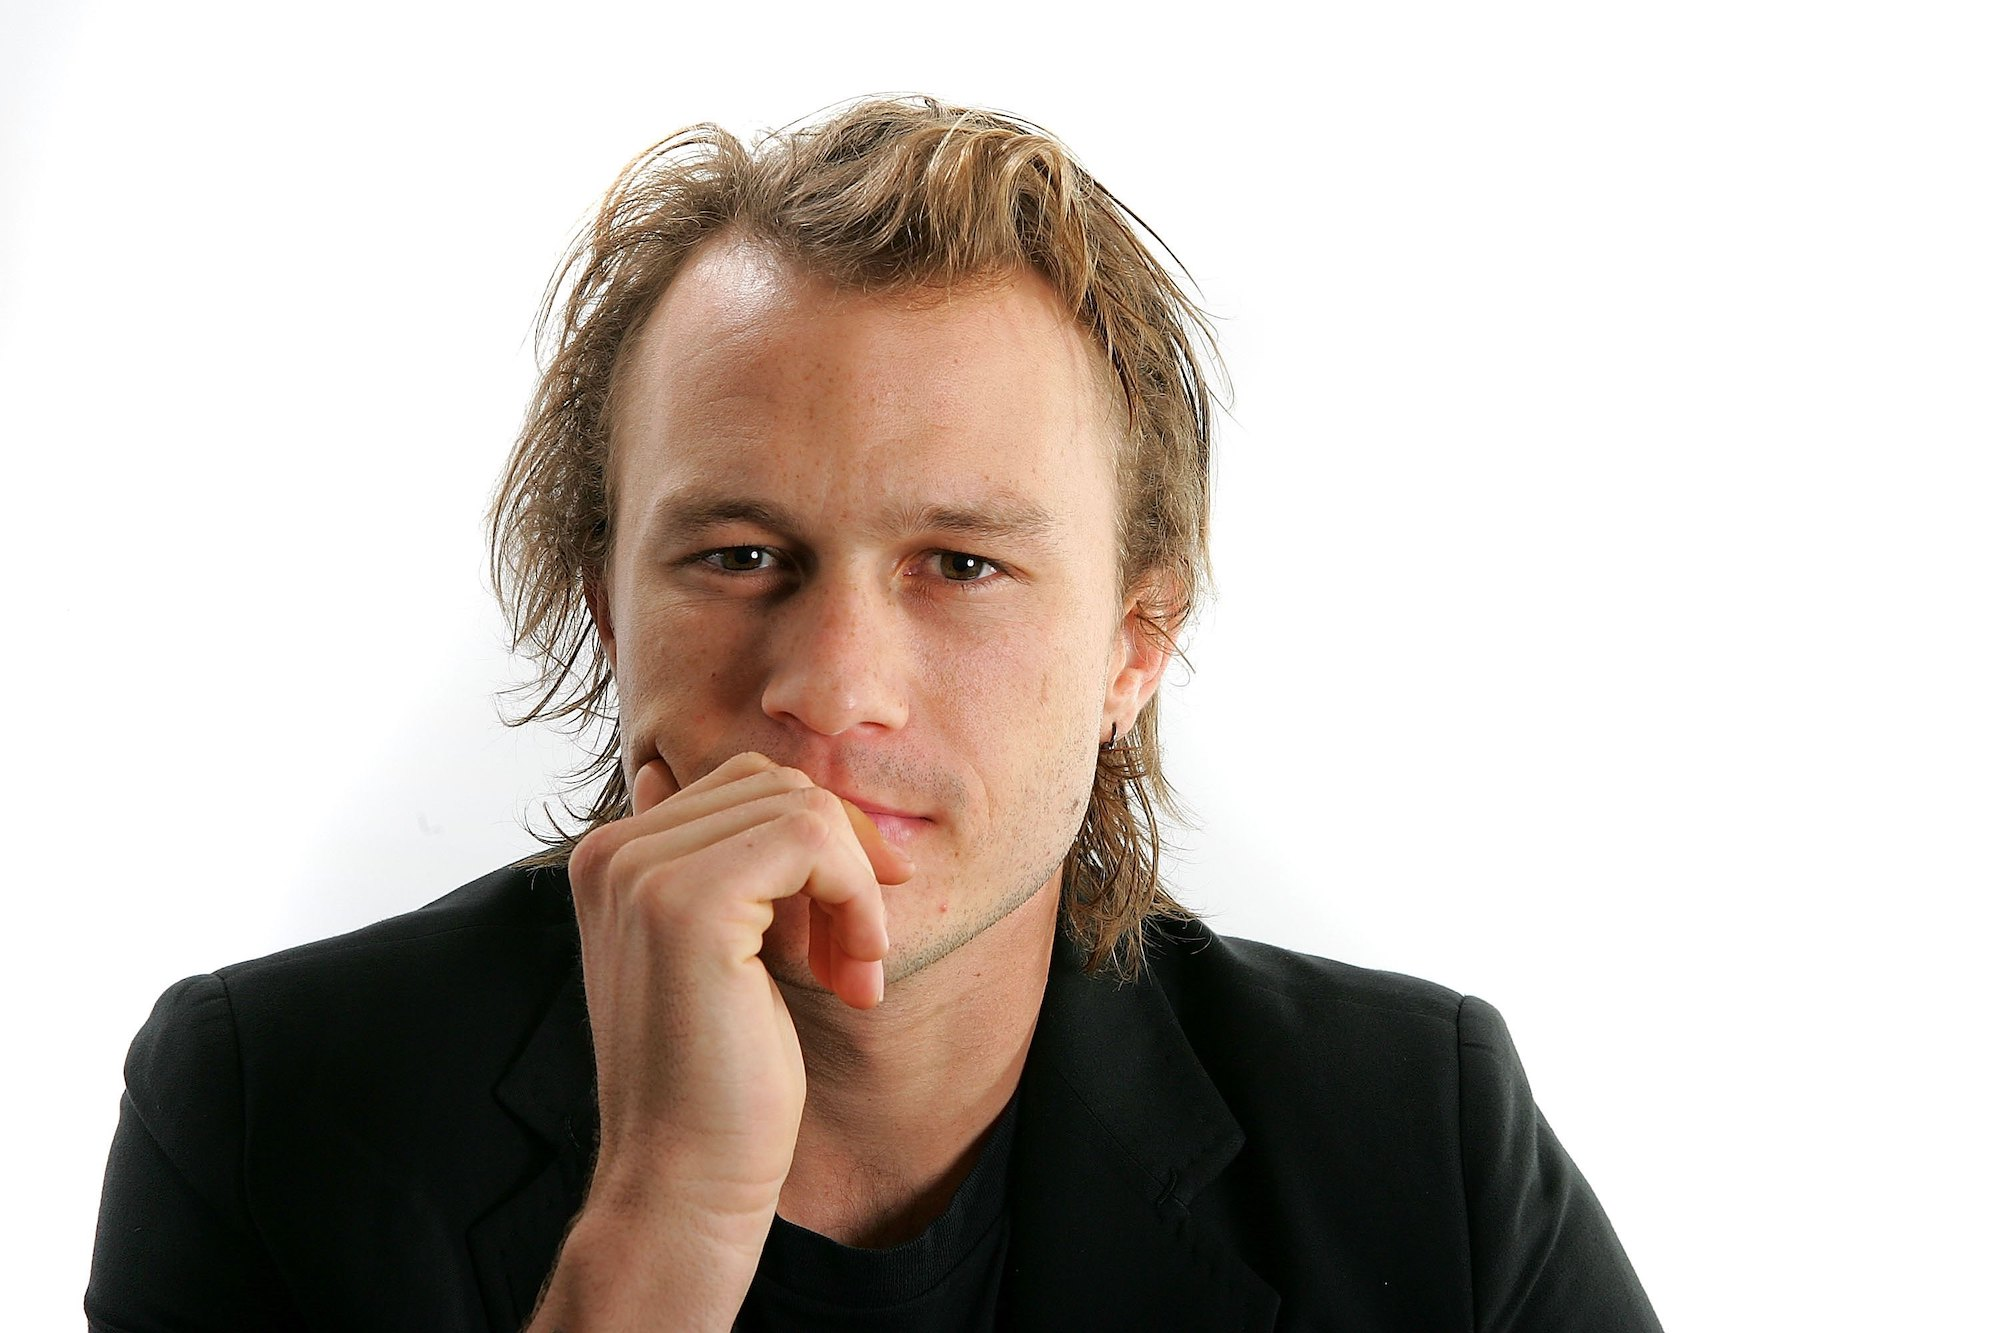 Heath Ledger Had Only 33 Minutes of Screen Time as The Joker and It Won Him an Oscar